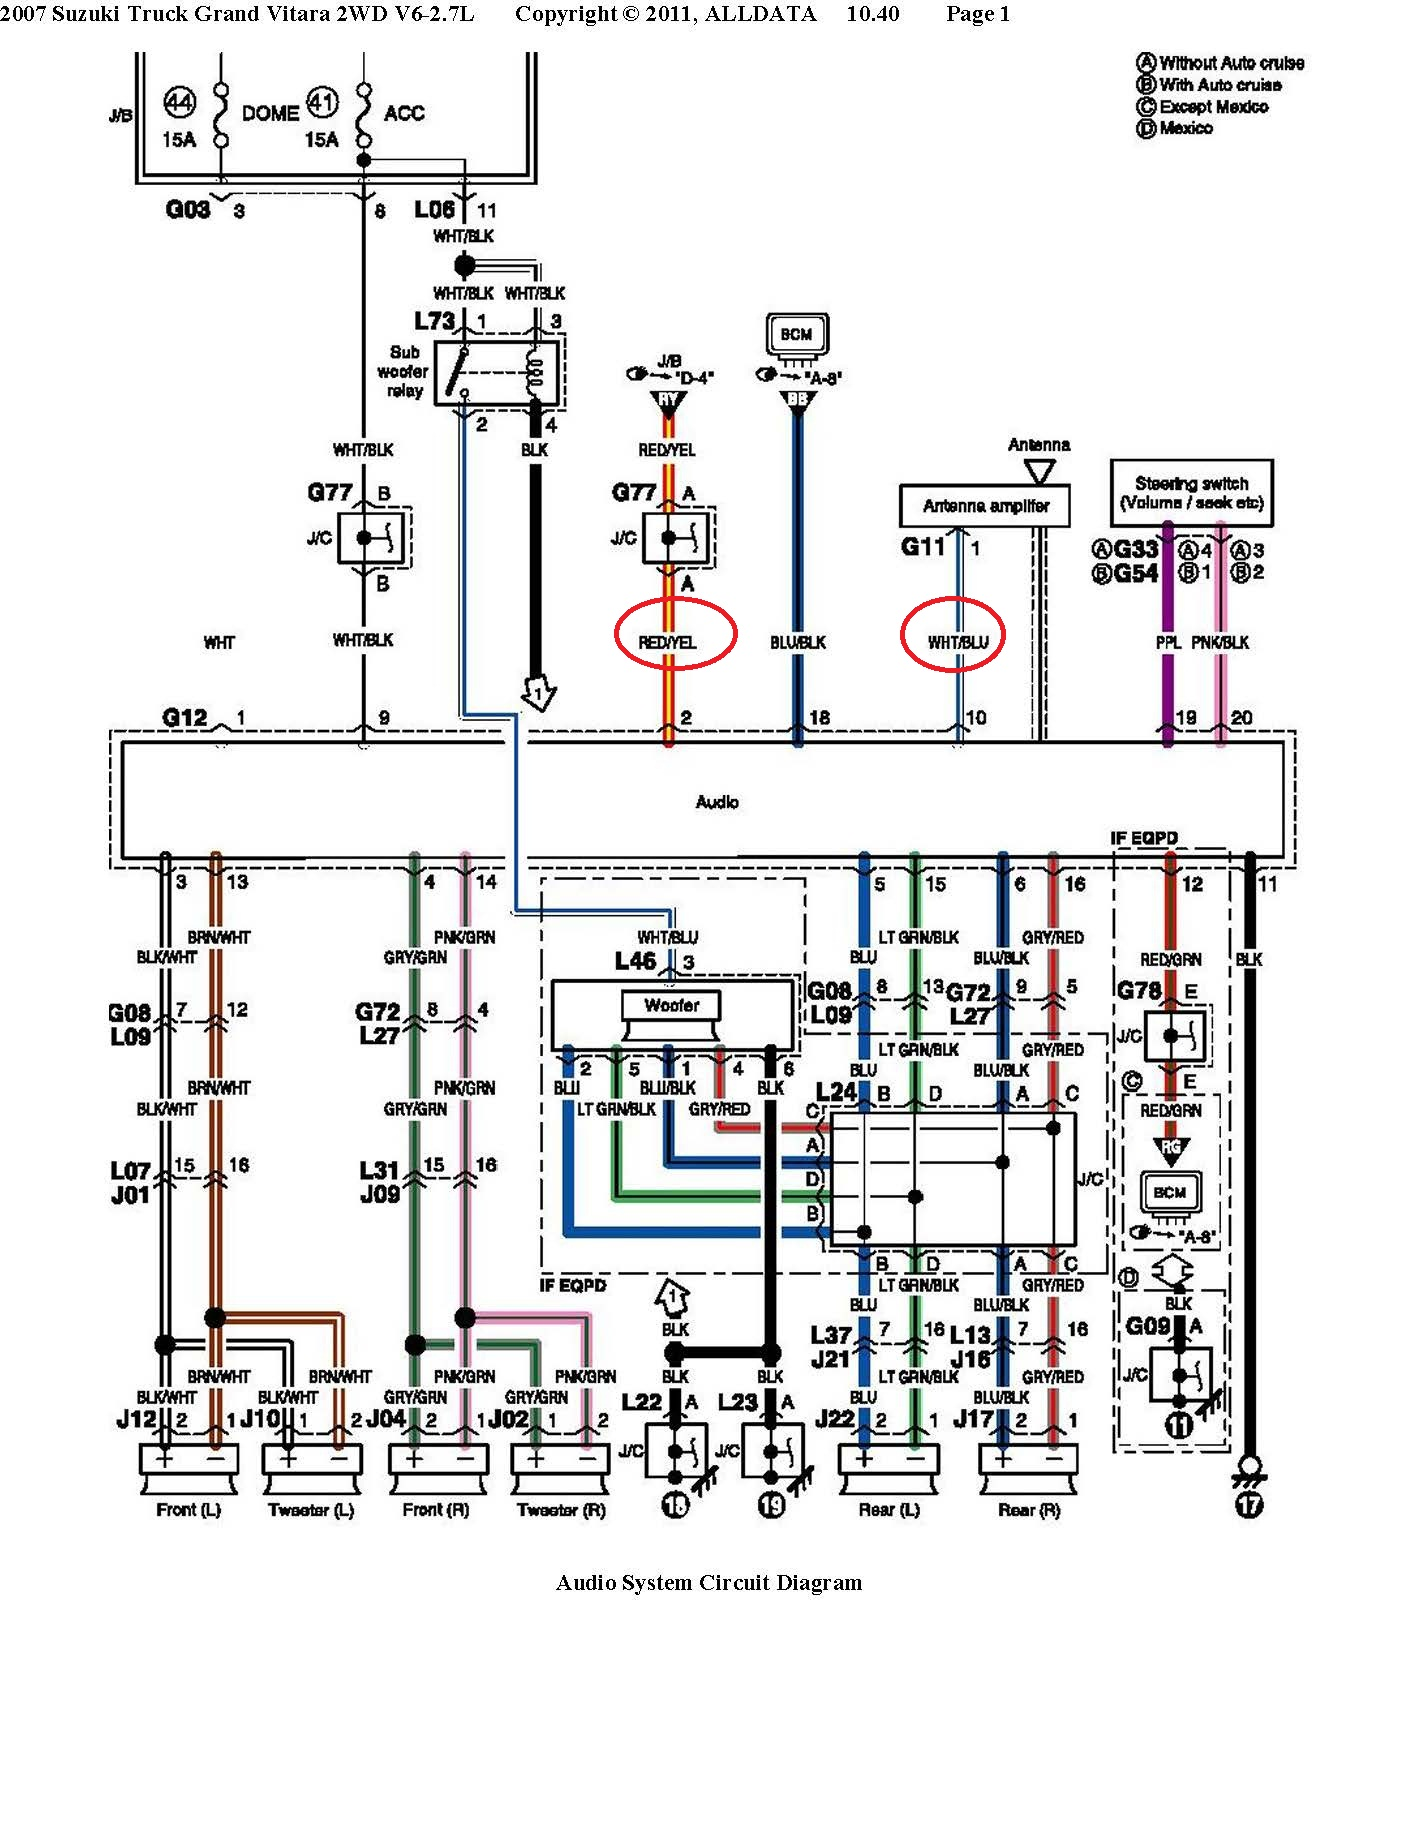 Power Wiring Diagram Suzuki Car Radio Stereo Audio Autoradio Connector Wire Installation Schematic Schema Esquema De Conexiones Stecker Konektor Connecteur Cable